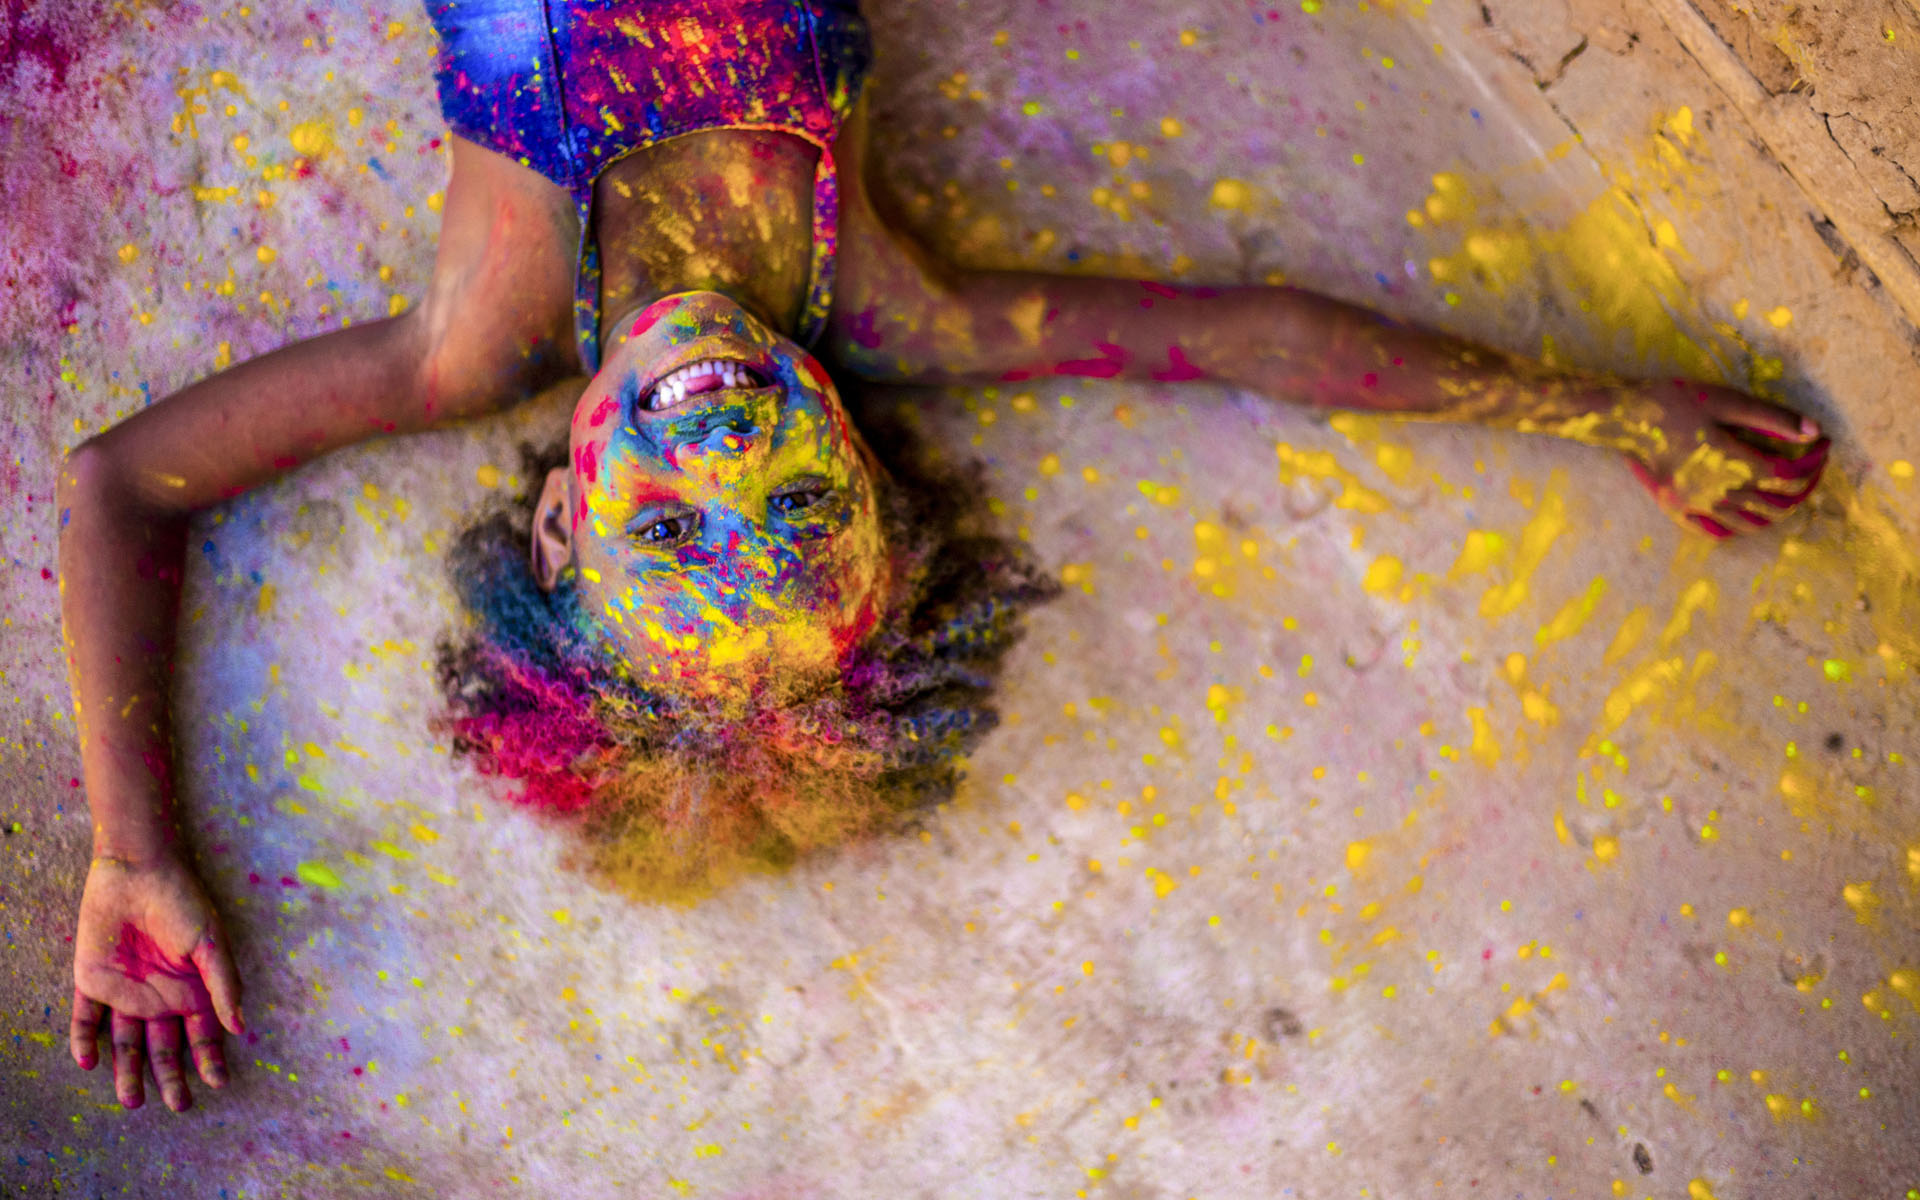 A Brazilian girl is covered in colorful powder outside her Compassion center.